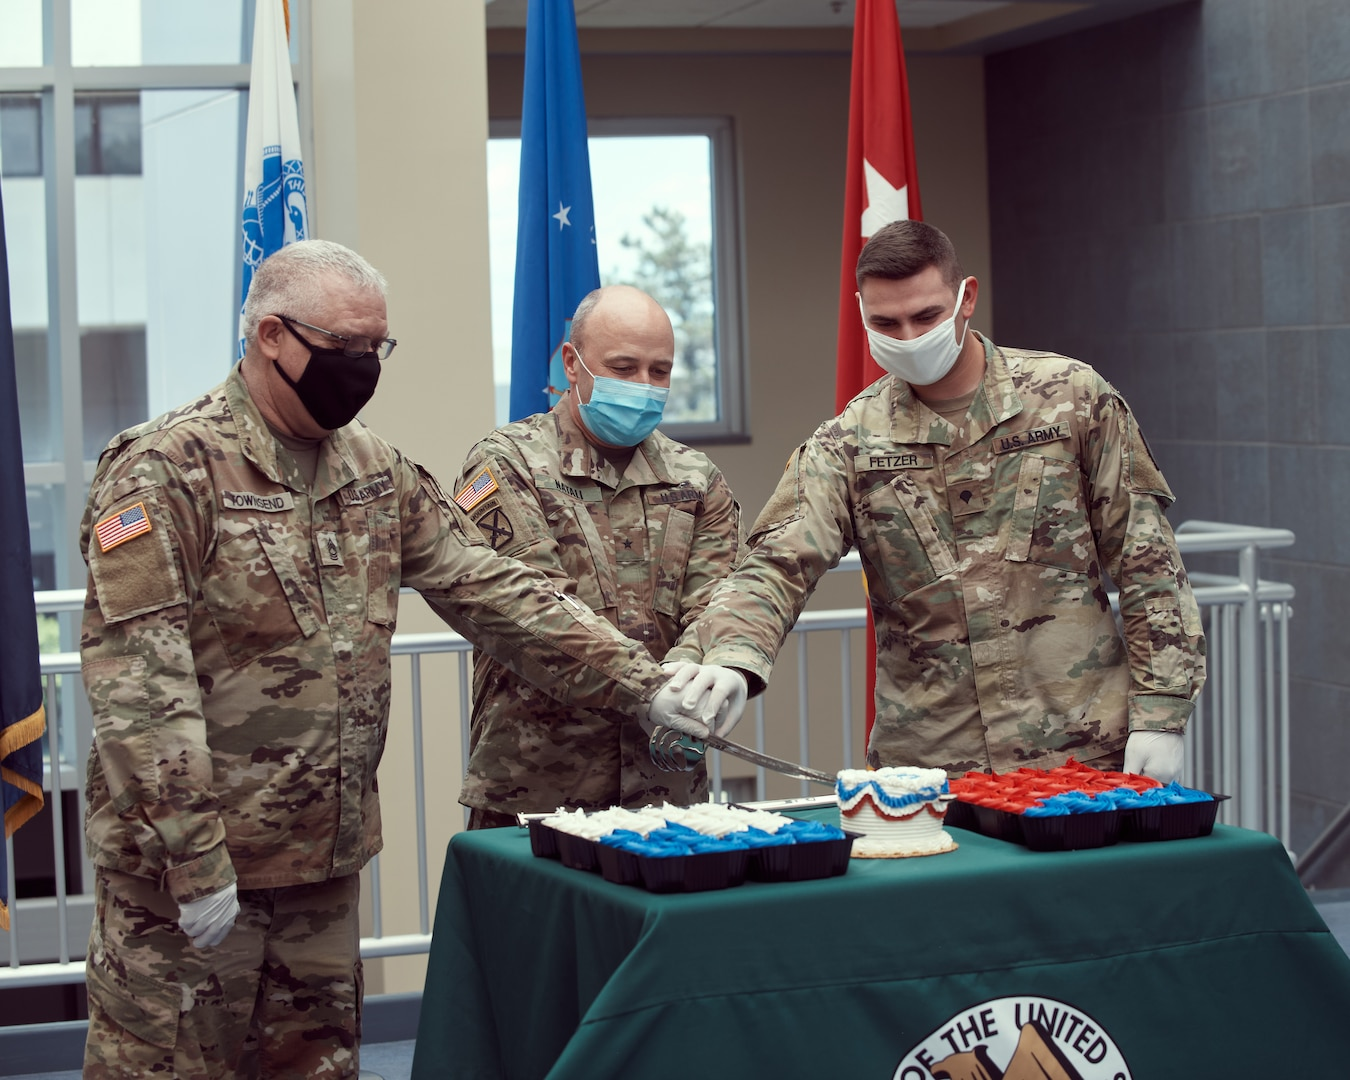 Master Sgt. Roger Townsend, an IT specialist assigned to New York National Guard Joint Force Headquarters, Brig. Gen. Michel Natali, the assistant adjutant general, Army, and Spc. Charles Fetzer, a military policeman assigned to the 104th Military Police Battalion, cut the U.S. Army birthday cake during a 245th Army birthday celebration at the Division of Military and Naval Affairs, Latham, N.Y., June 12th, 2020. The Army birthday is recognized each year with a cake cutting featuring the youngest Soldier, representing the future; the oldest Soldier representing wisdom and traditions; along with the commanding officer, though this year COVID-19 precautions were in place limiting the size of the event.